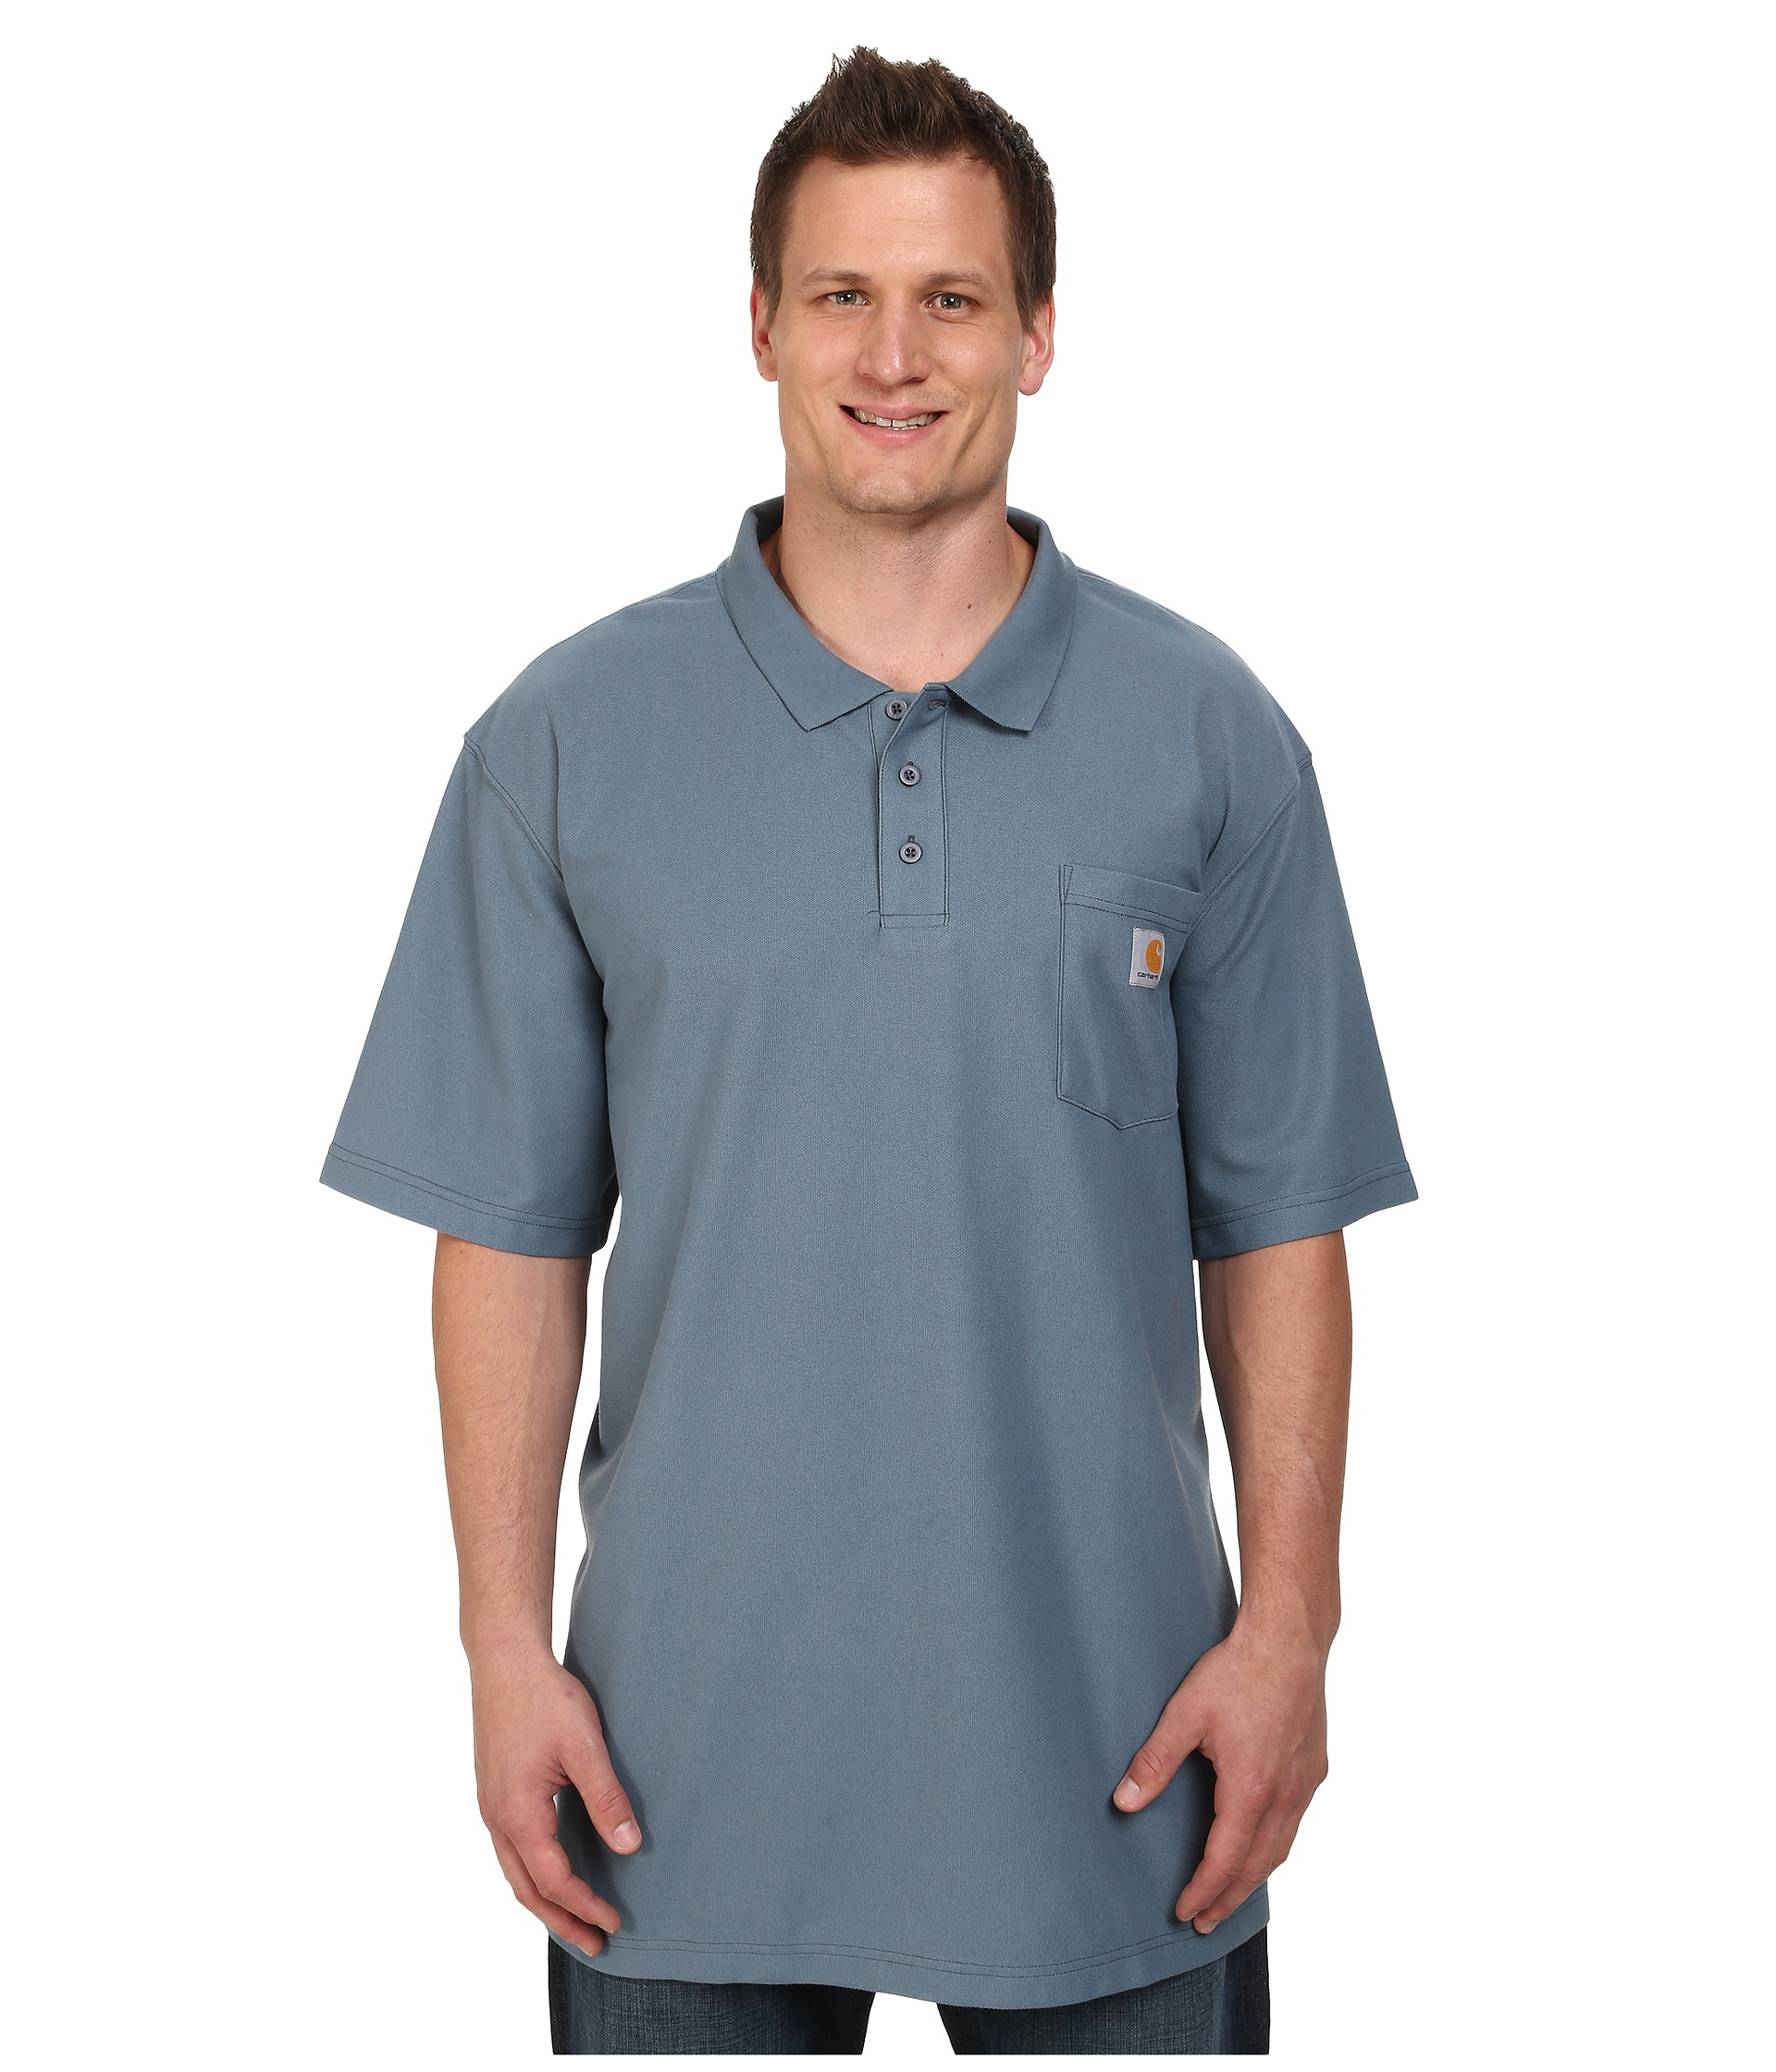 Carhartt big tall contractors work pocket polo in gray for Big and tall polo shirts with pockets